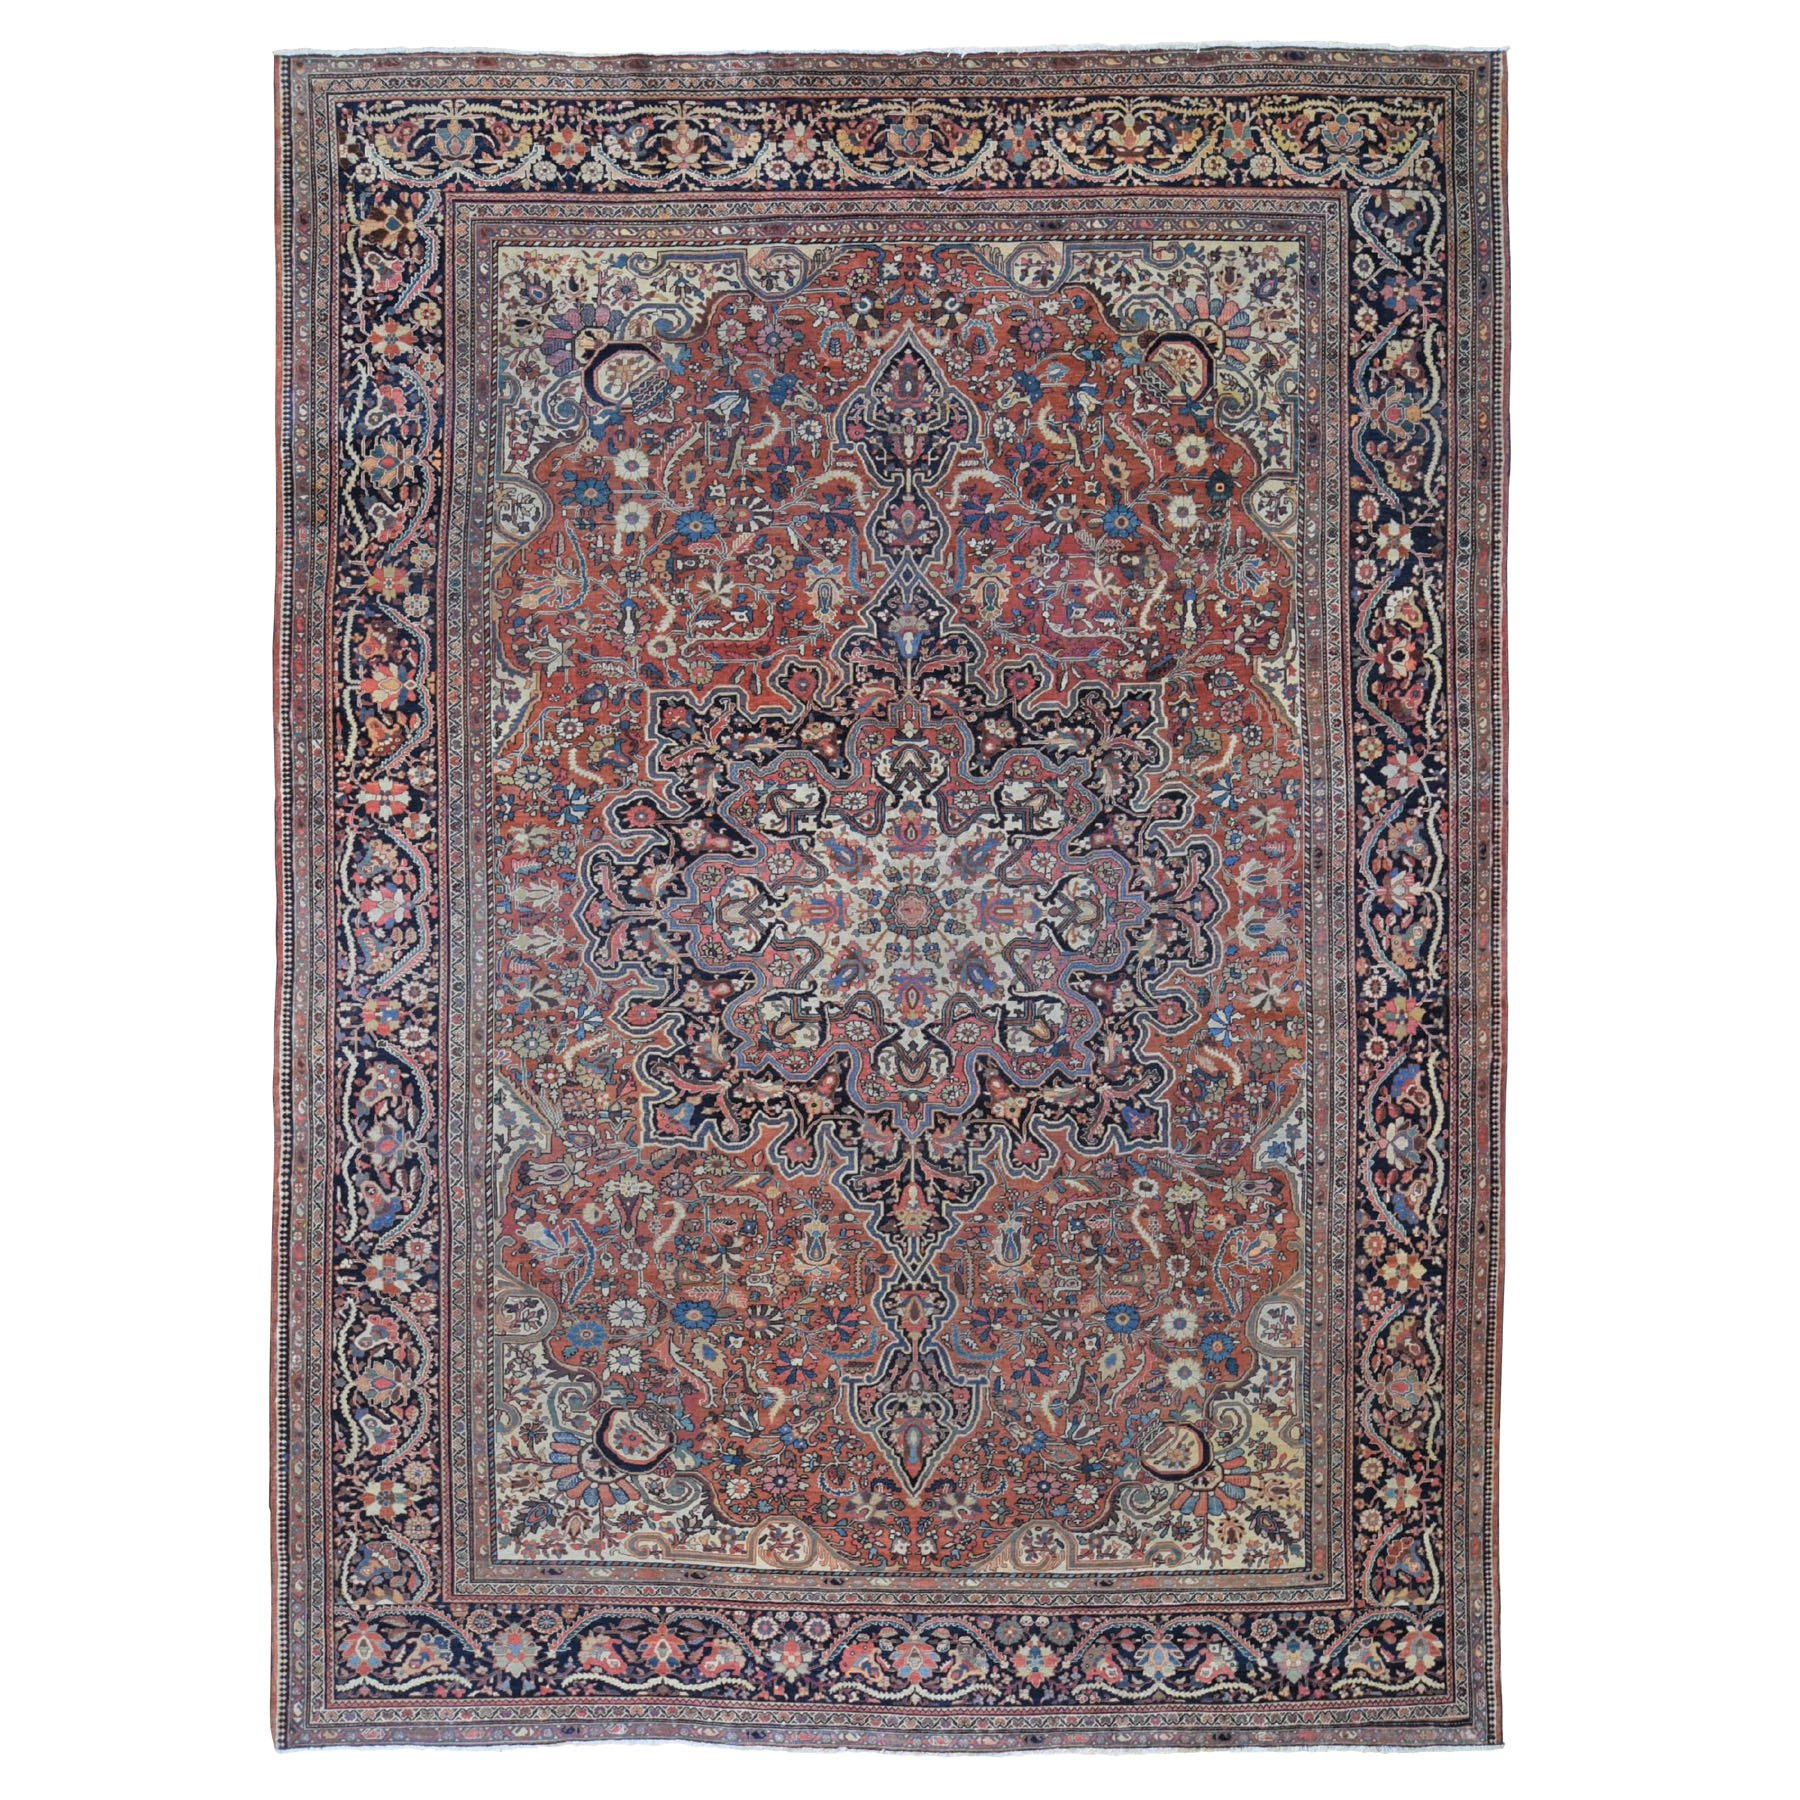 """8'9""""X12'6"""" Red Antique Persian Sarouk Fereghan  Evern Wear, Soft Hand Knotted Oriental Rug moad89d9"""